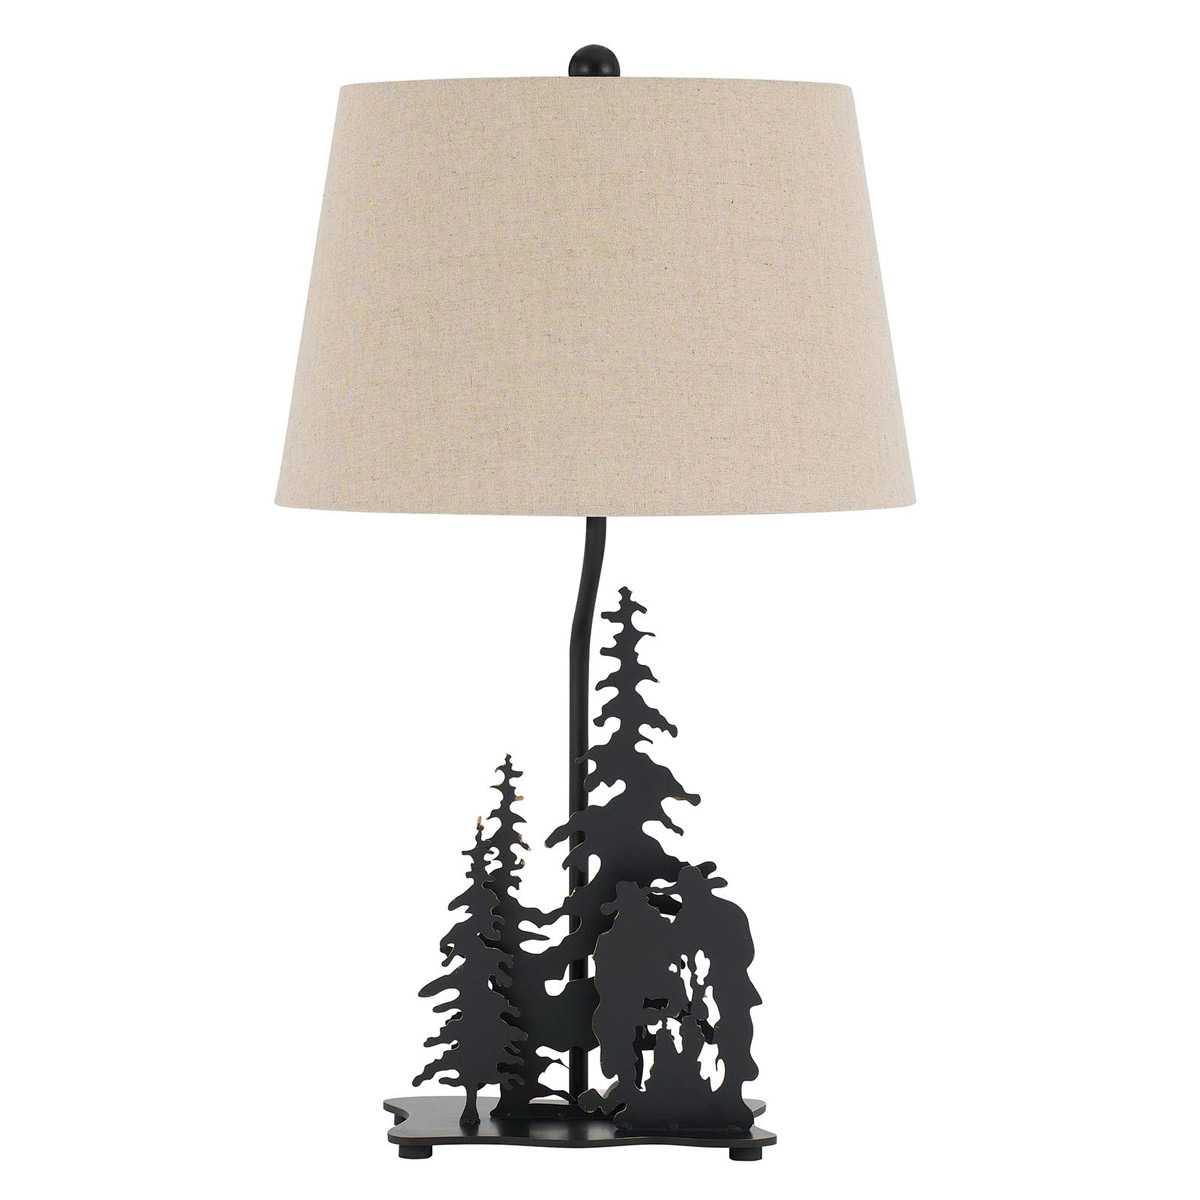 Cowboy Campfire Table Lamp